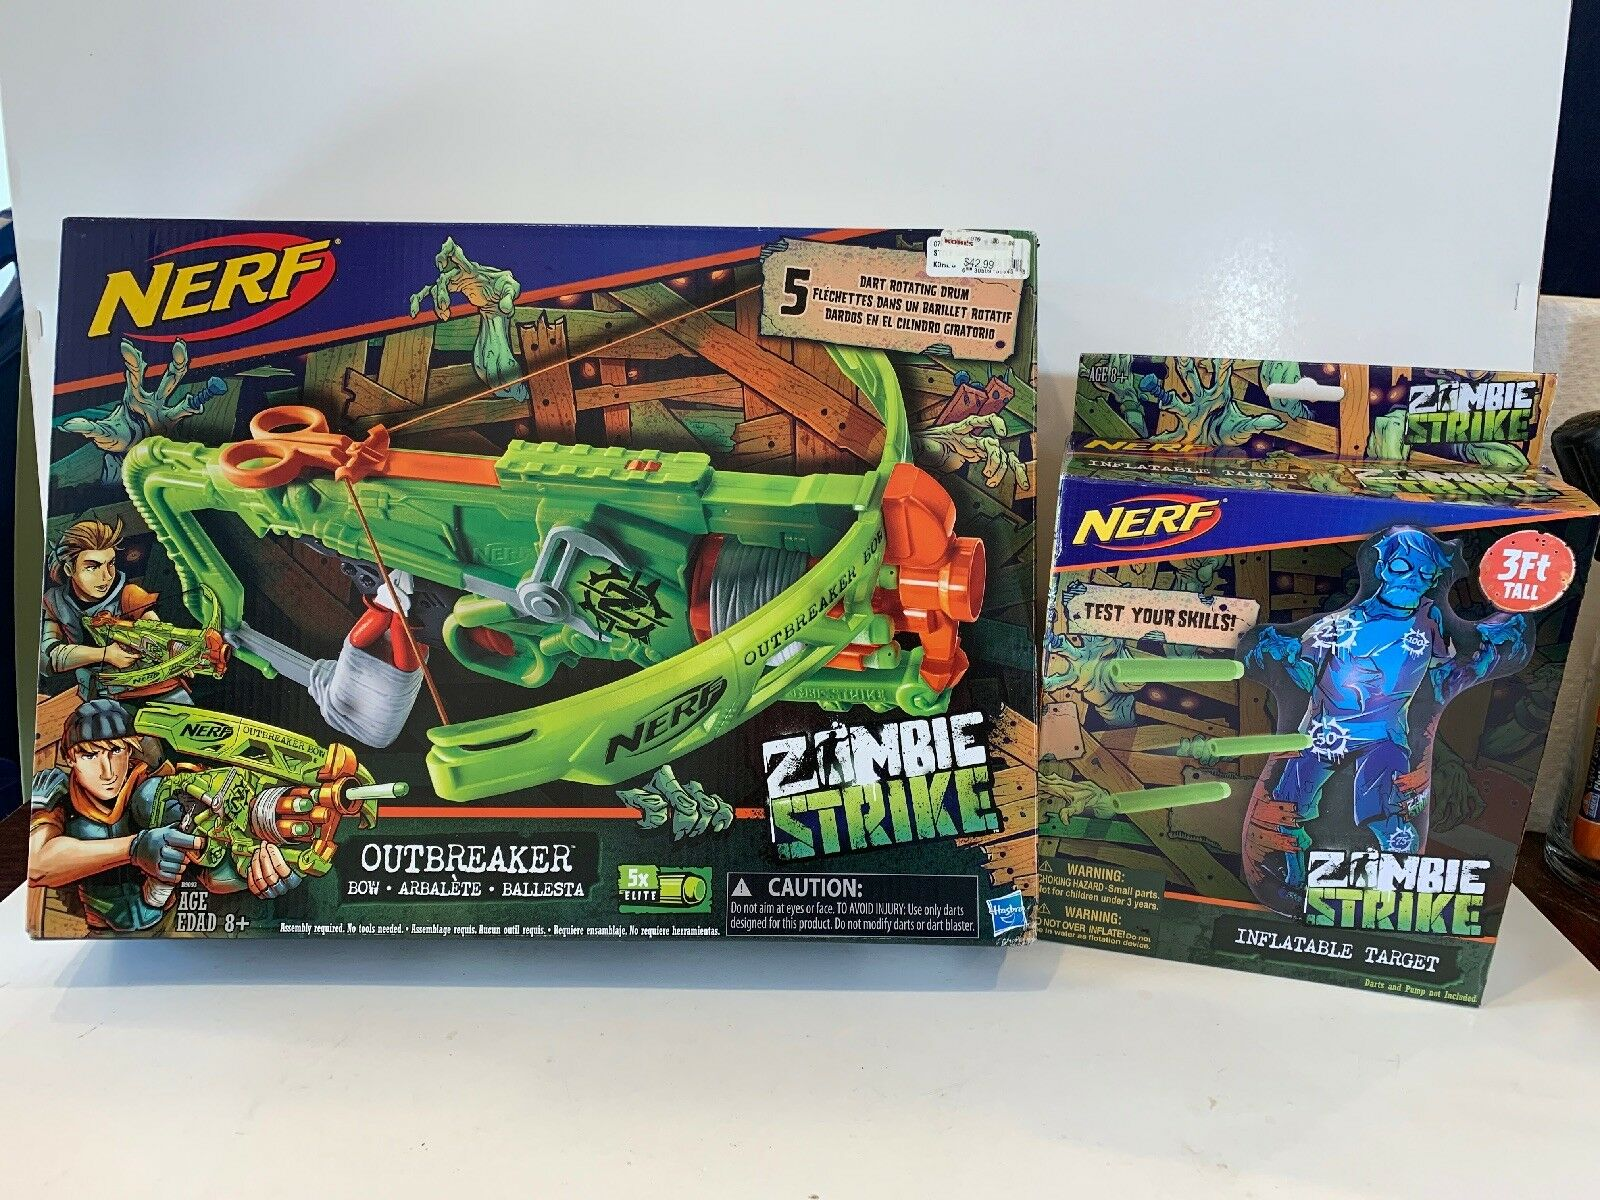 Nerf Zombie Strike Inflatable Target Target Target & Outbreaker Bow Kids Game Toy Both Sealed d6d994